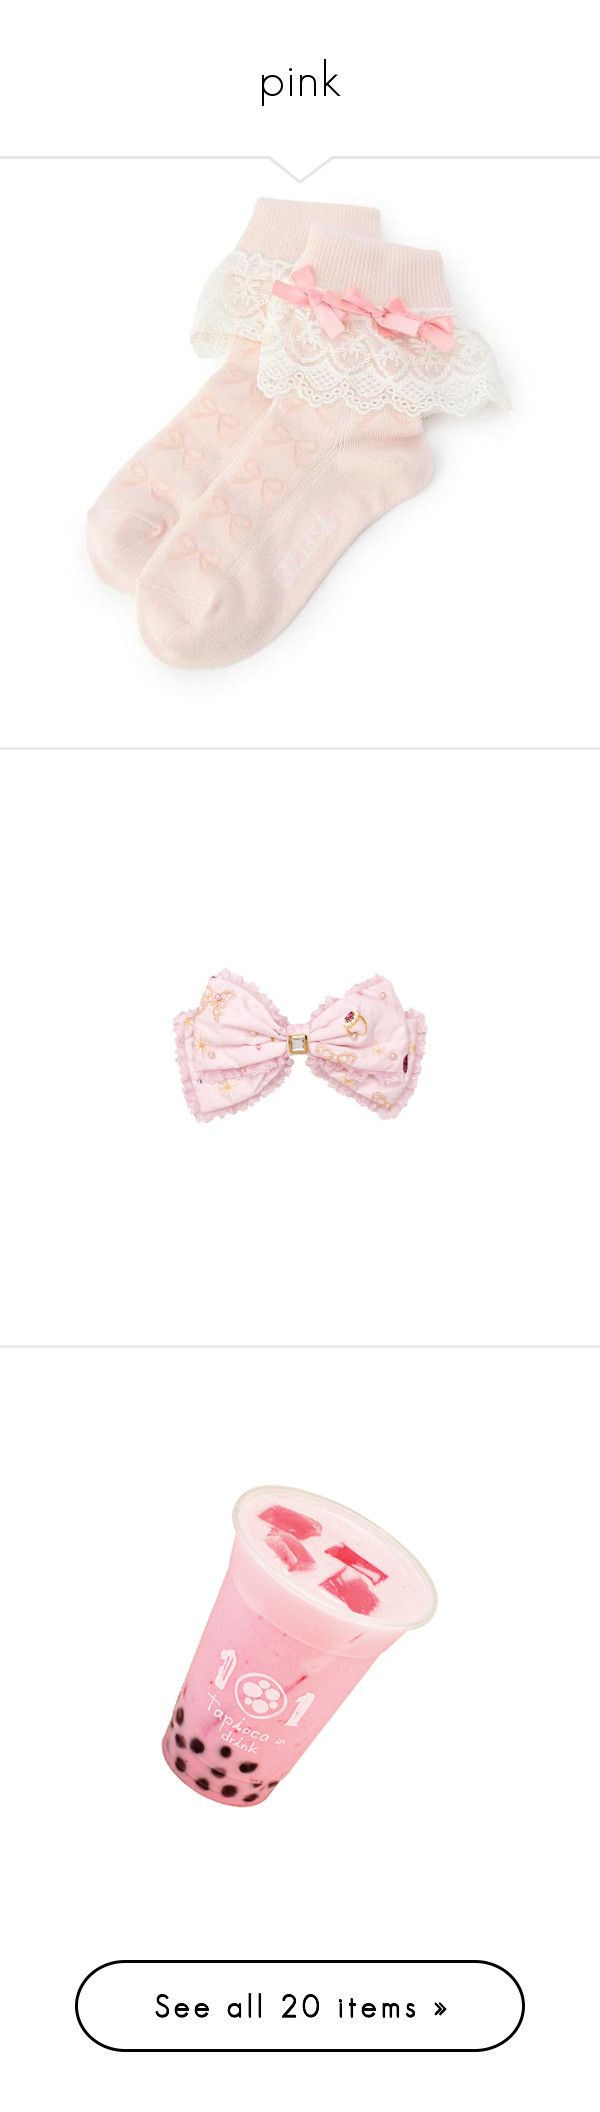 """""""pink"""" by toppingu ❤ liked on Polyvore featuring intimates, hosiery, socks, socks and tights, legwear, pink, pink socks, accessories, hair accessories and bows"""